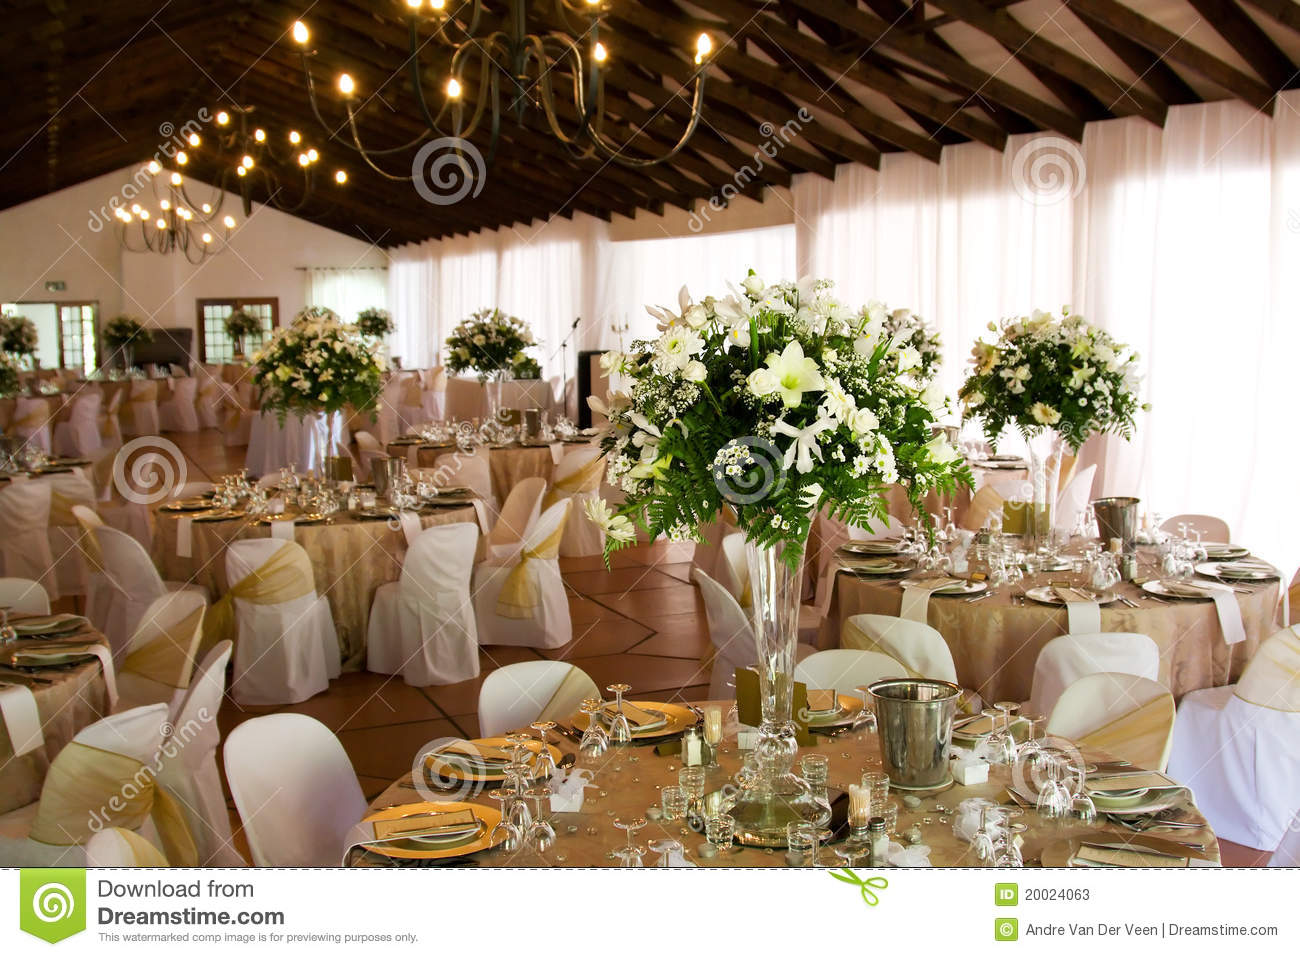 Indoors Wedding Reception Venue With Decor Stock Photos - Image